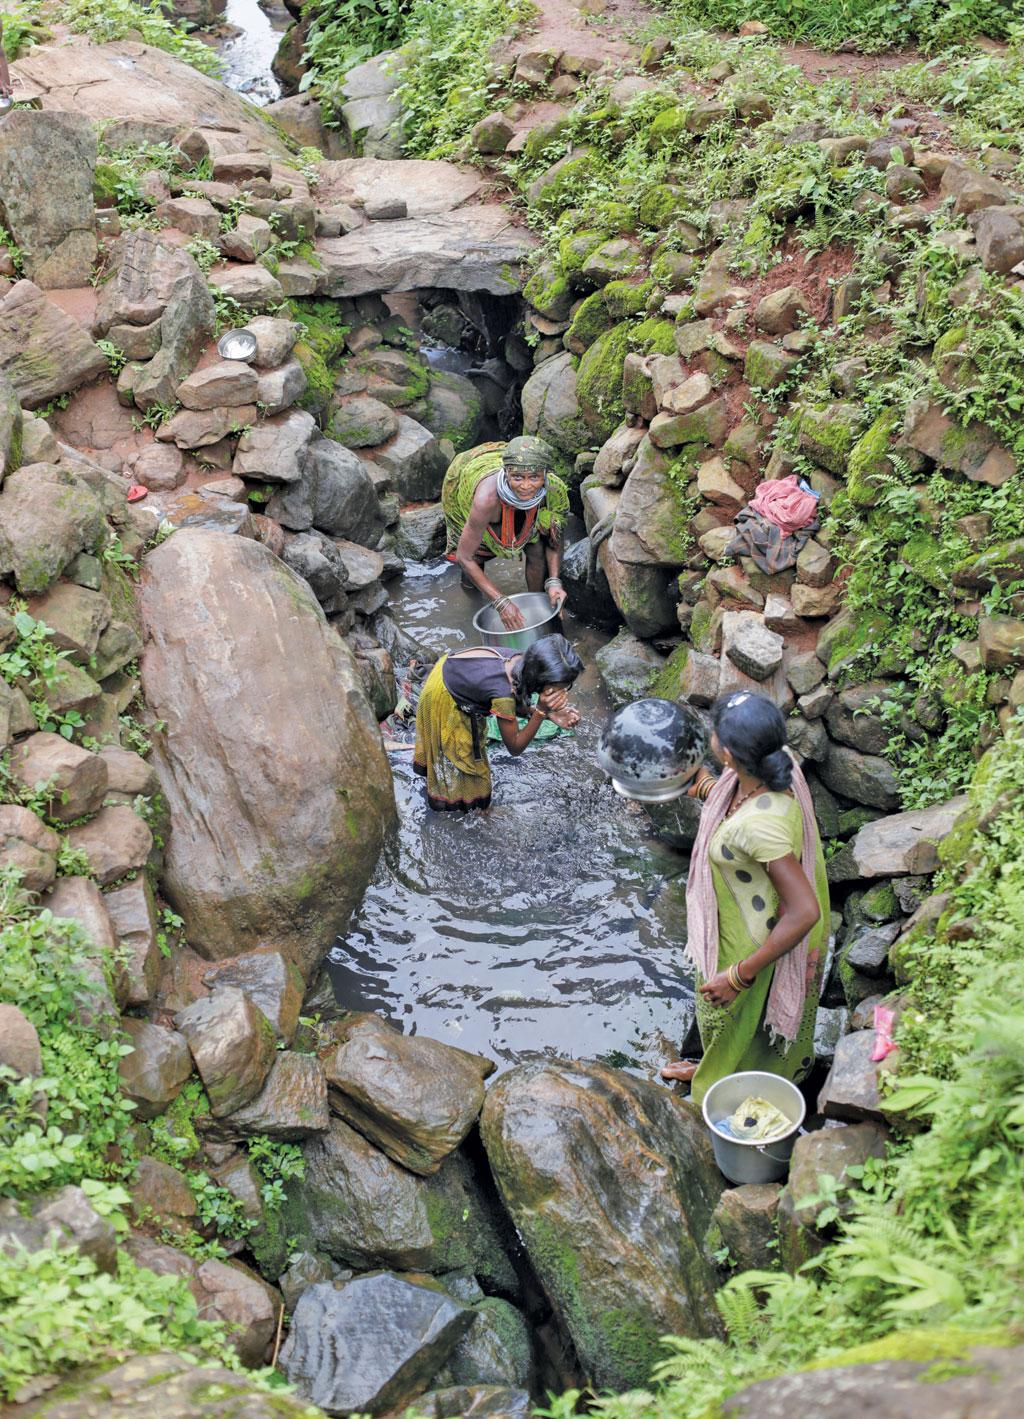 A stream in Mudlipada village: Most households do not have the facility of piped drinking water or handpumps. So Bonda women have to sometimes walk for many kilometres to fetch water